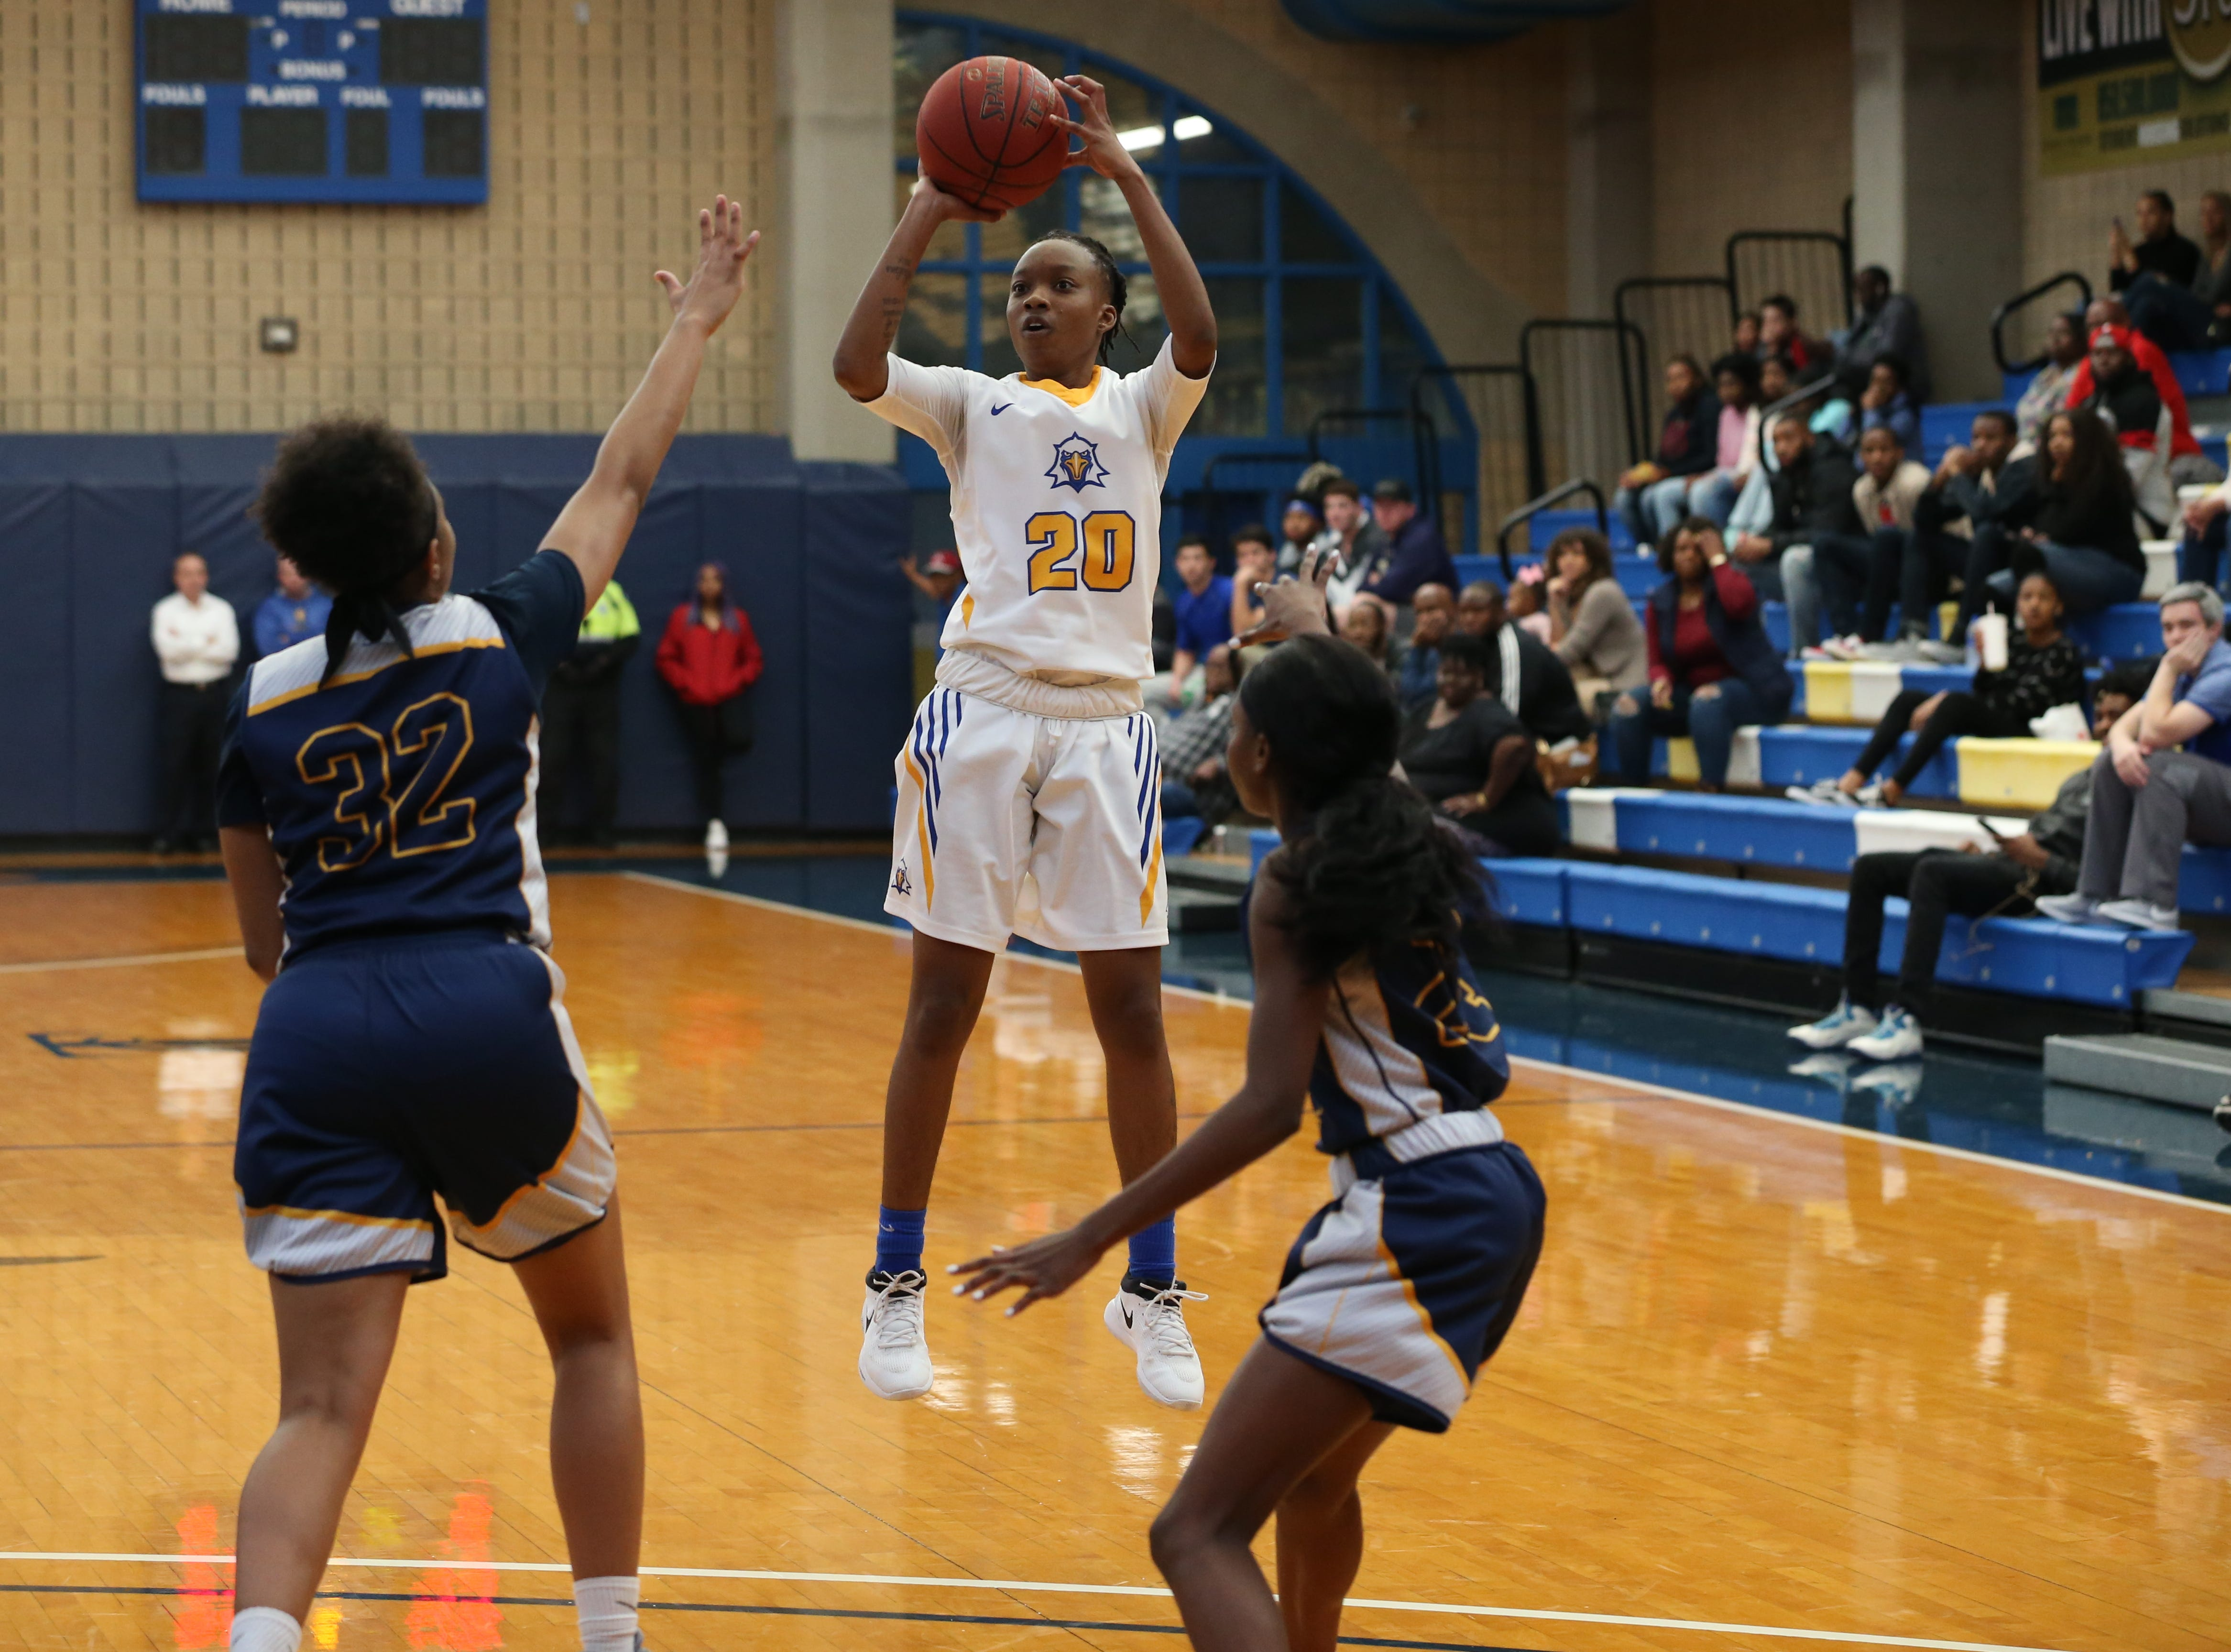 Tallahassee Community College Eagles guard Daisha Bradford (20) shoots for three. The Tallahassee Community College Eagles host the Gulf Coast State College Commodores in a conference match-up in the Eagledome, Saturday, Jan. 5, 2019.